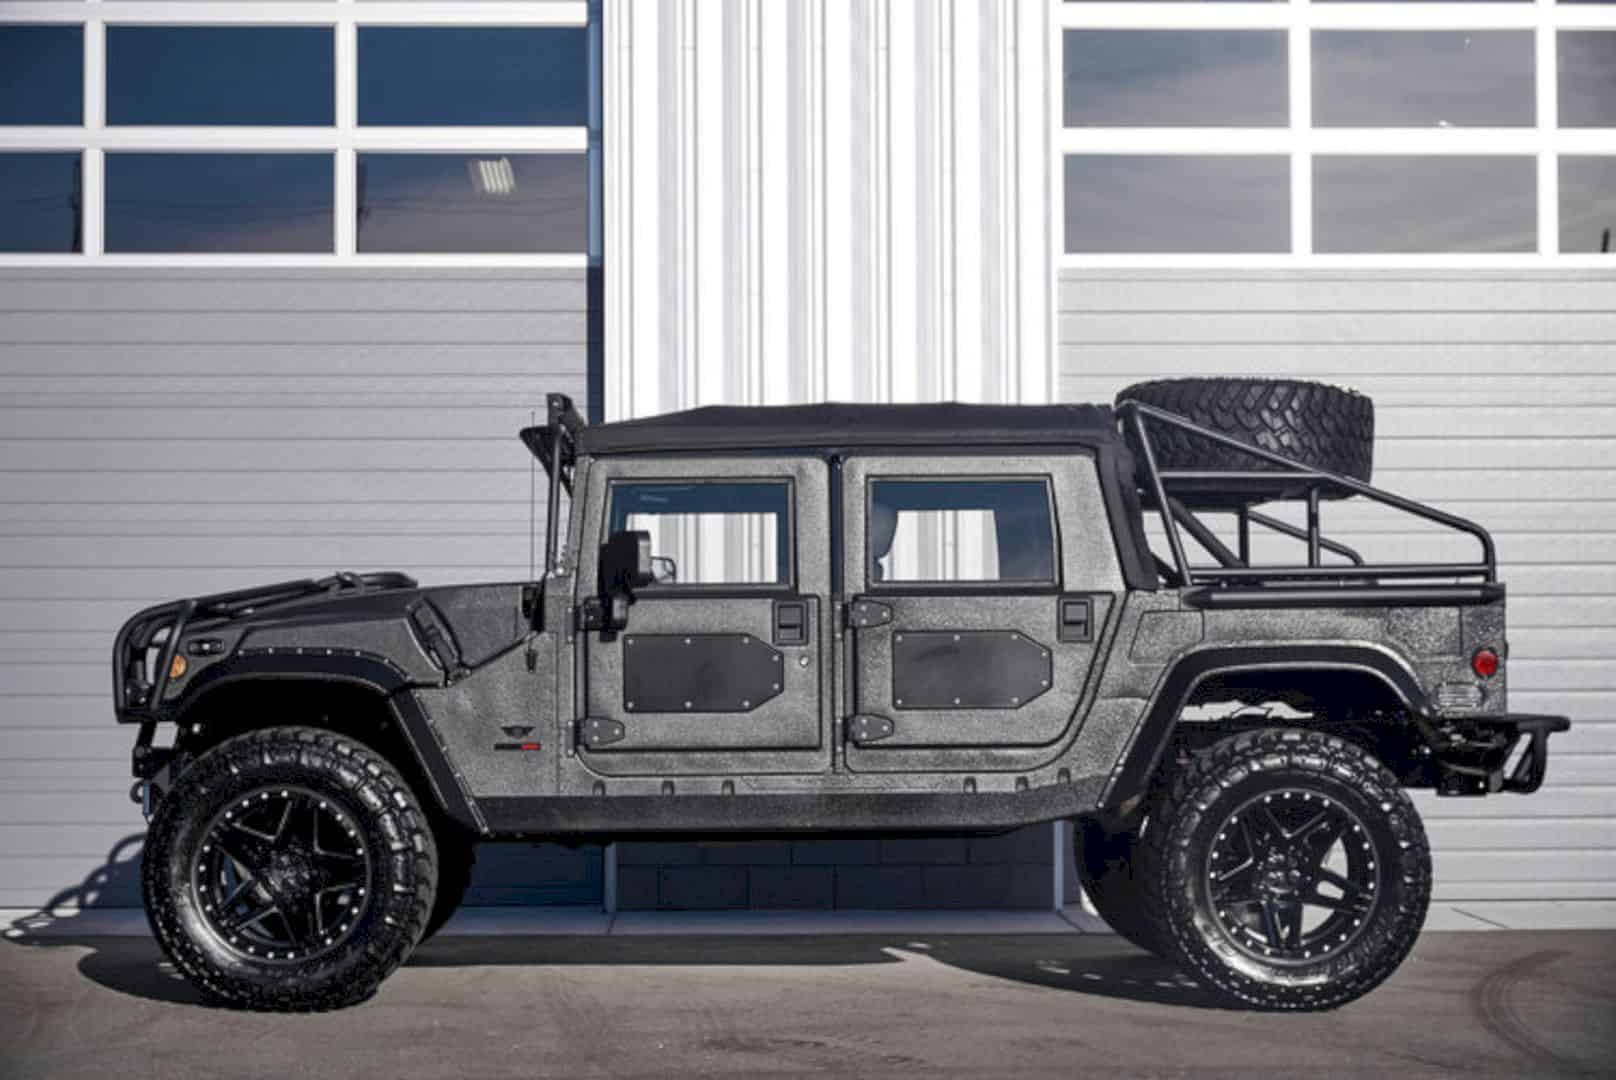 Reaper Truck For Sale >> Mil-Spec Automotive Hummer H1 Launch Edition – Unleash The Robust Beast | Design Listicle